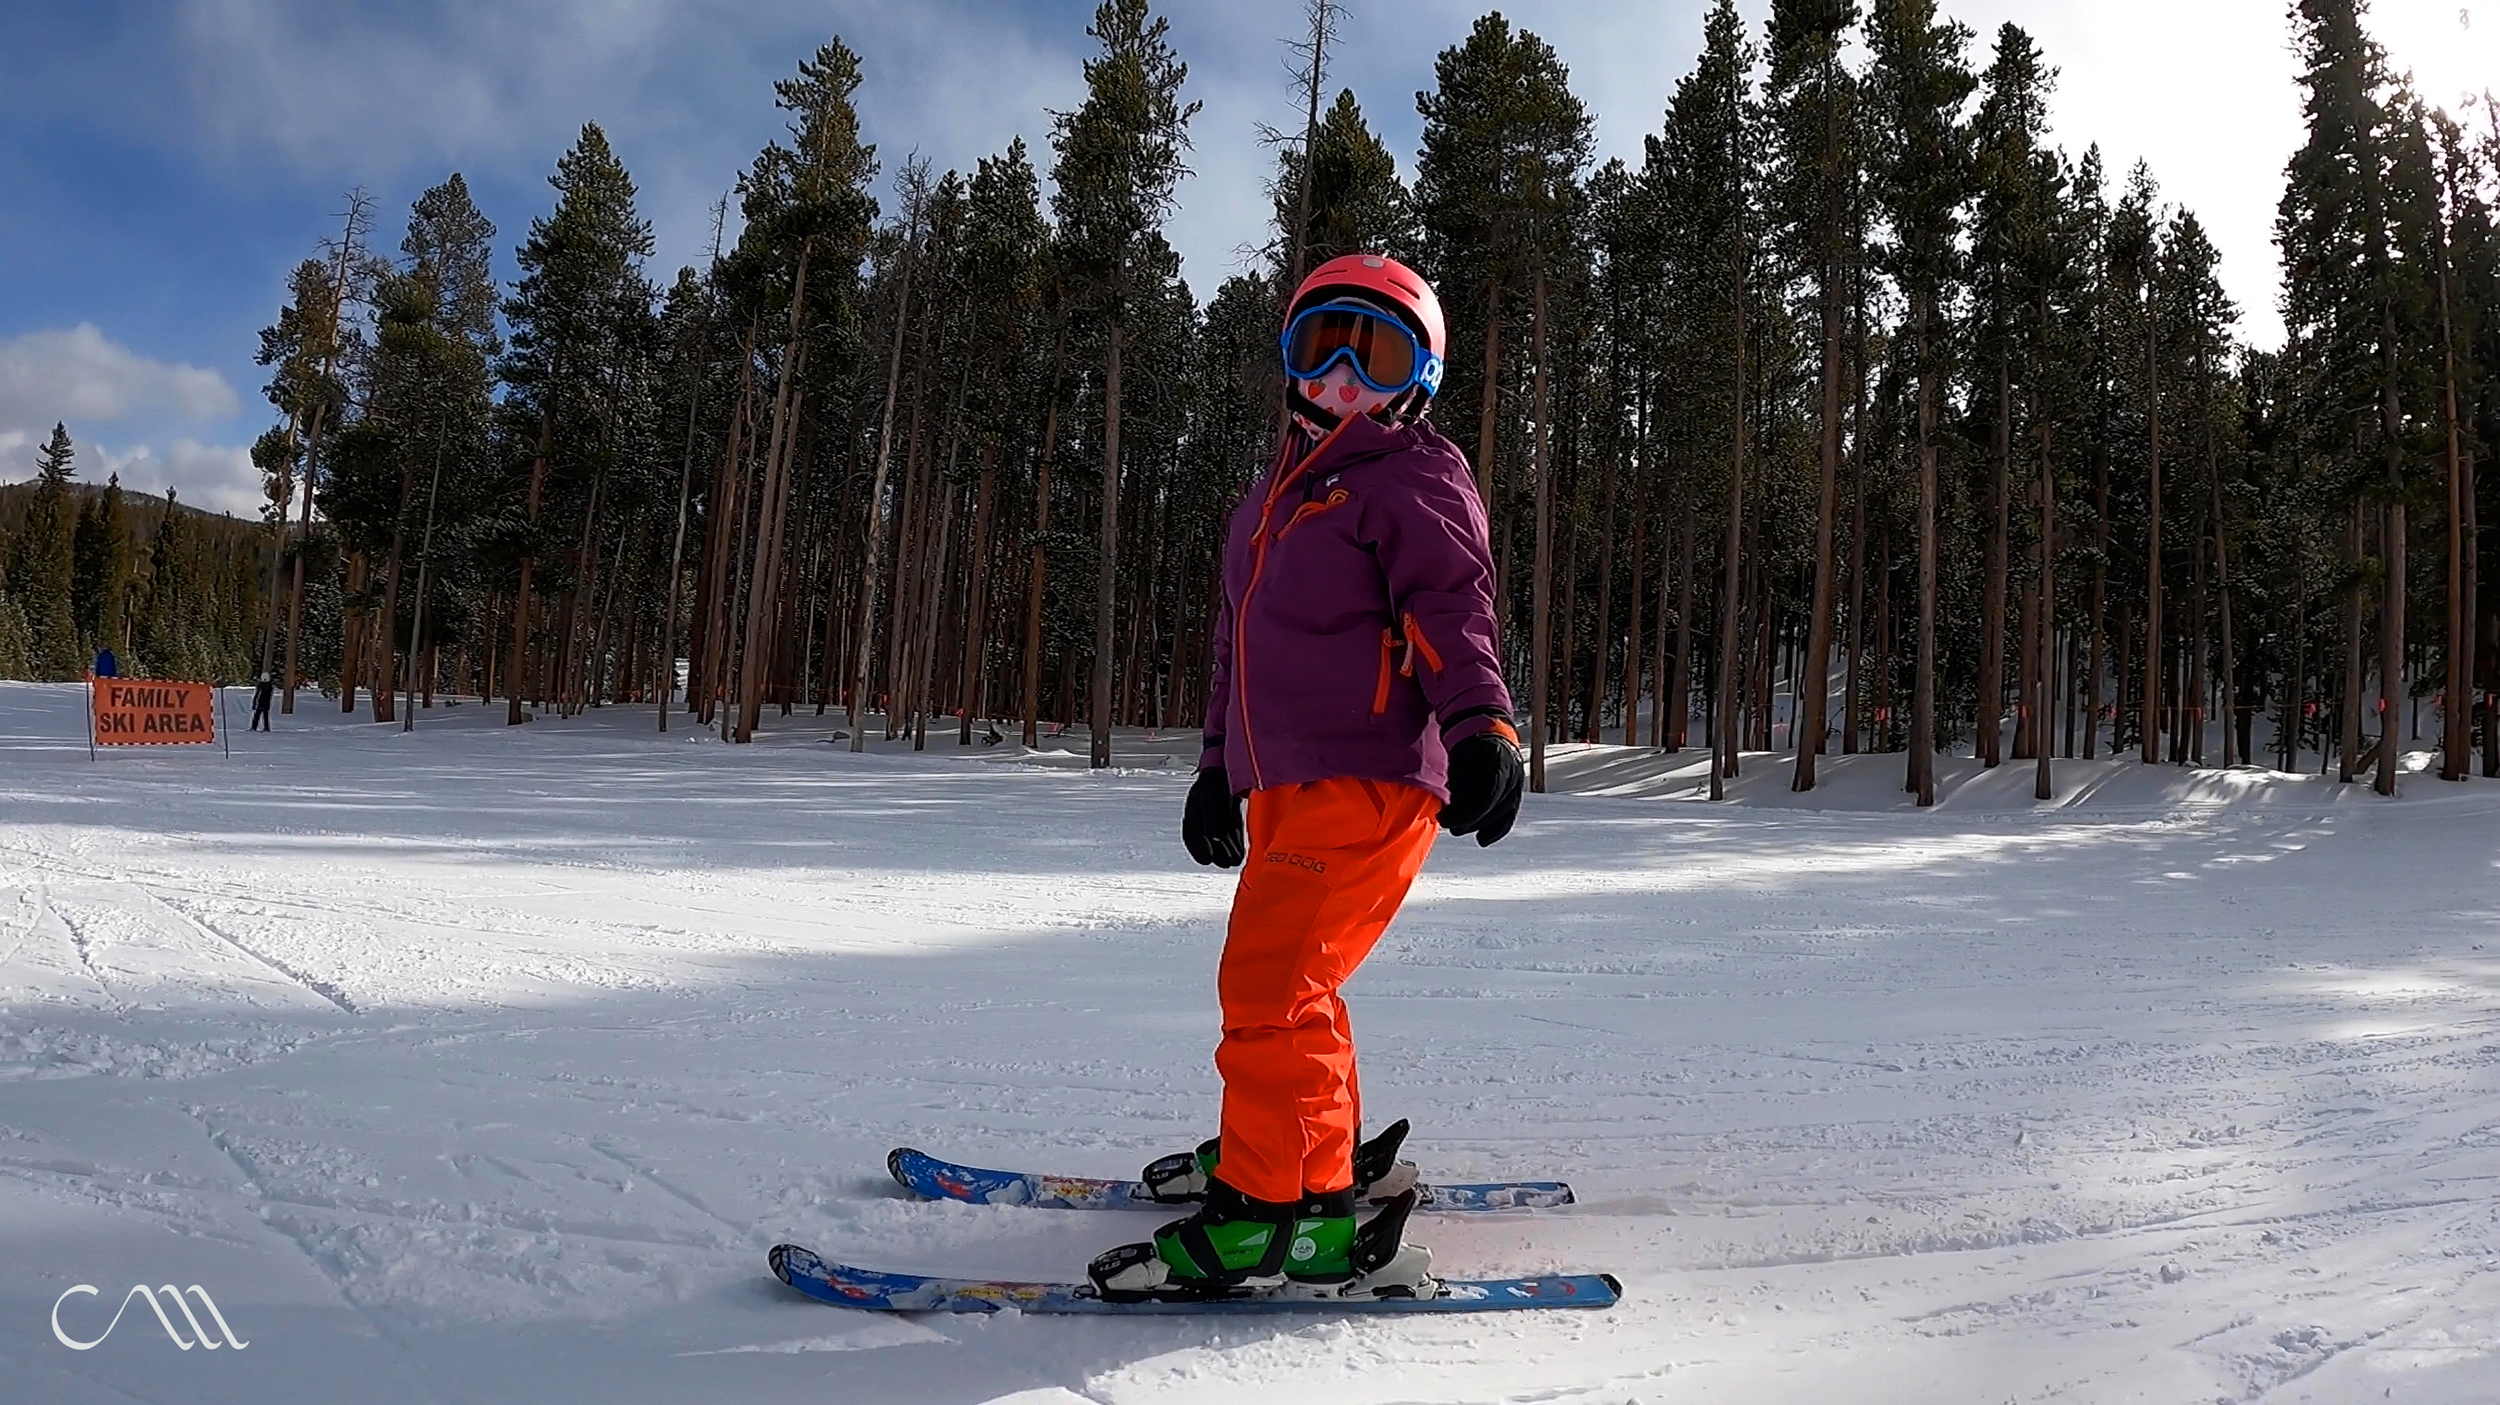 Roise on the slopes in her Shred Dog gear.